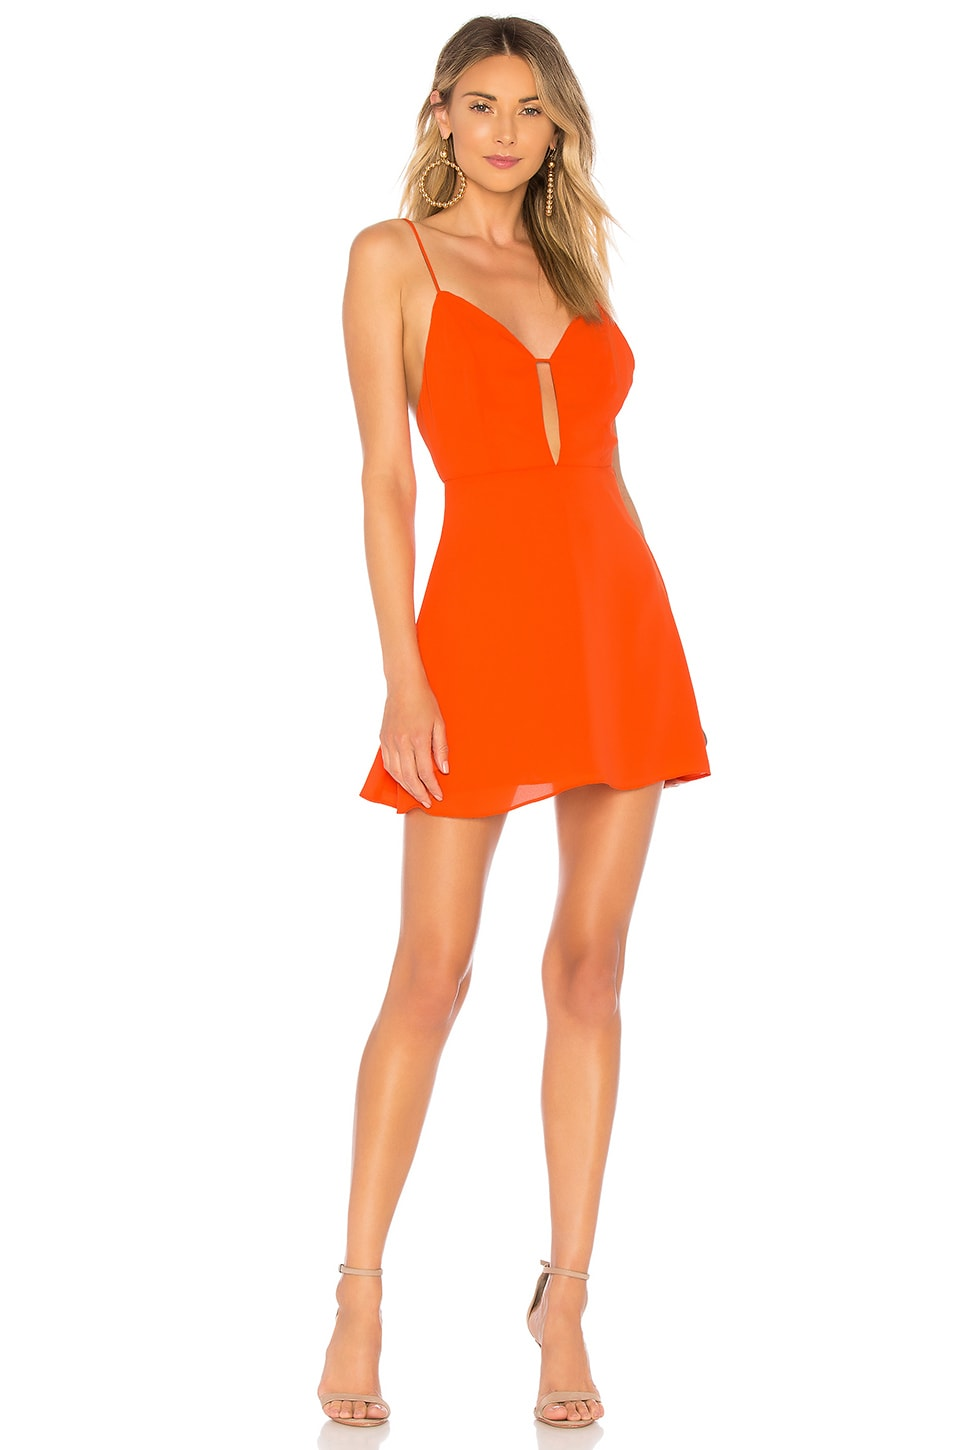 About Us Helen Cut Out Mini Dress in Orange